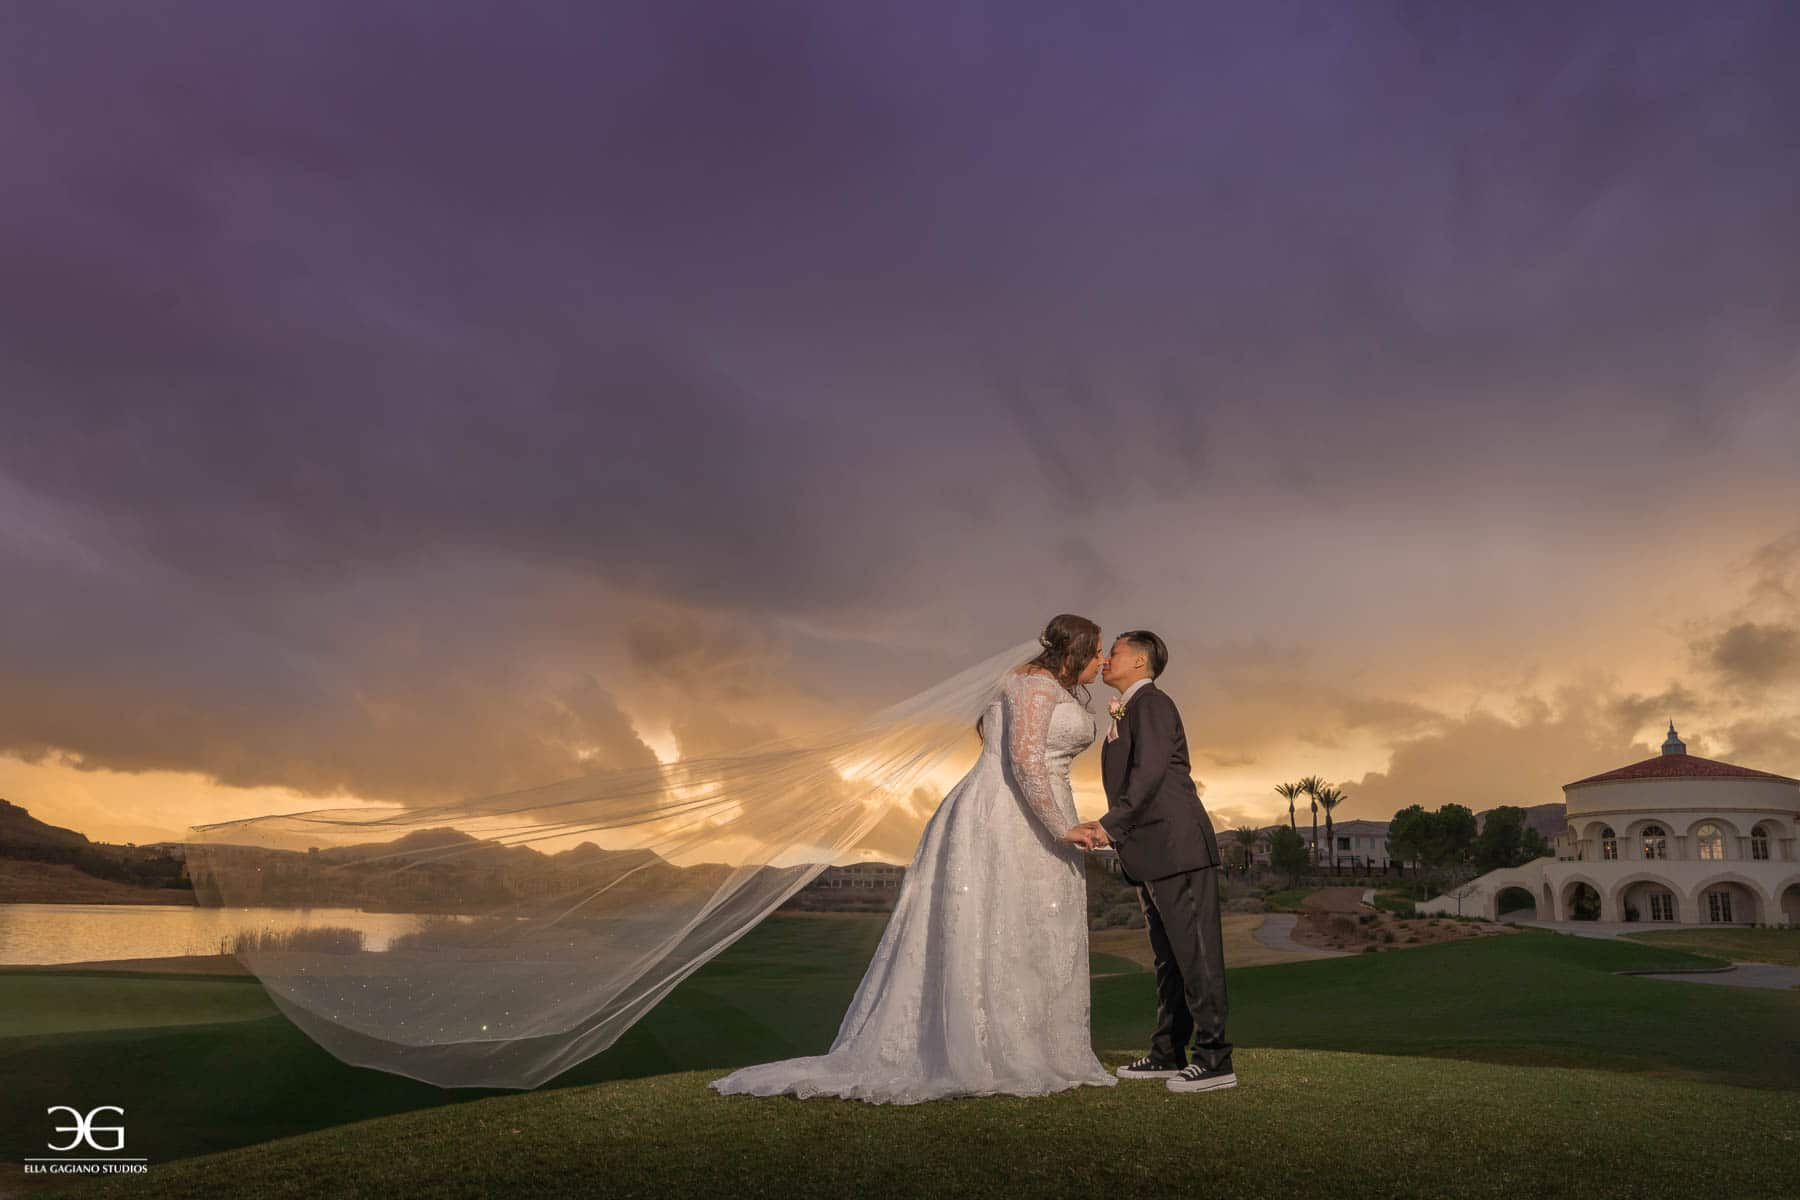 Wedding Photoshoot Outdoors With a Beautiful Sunset